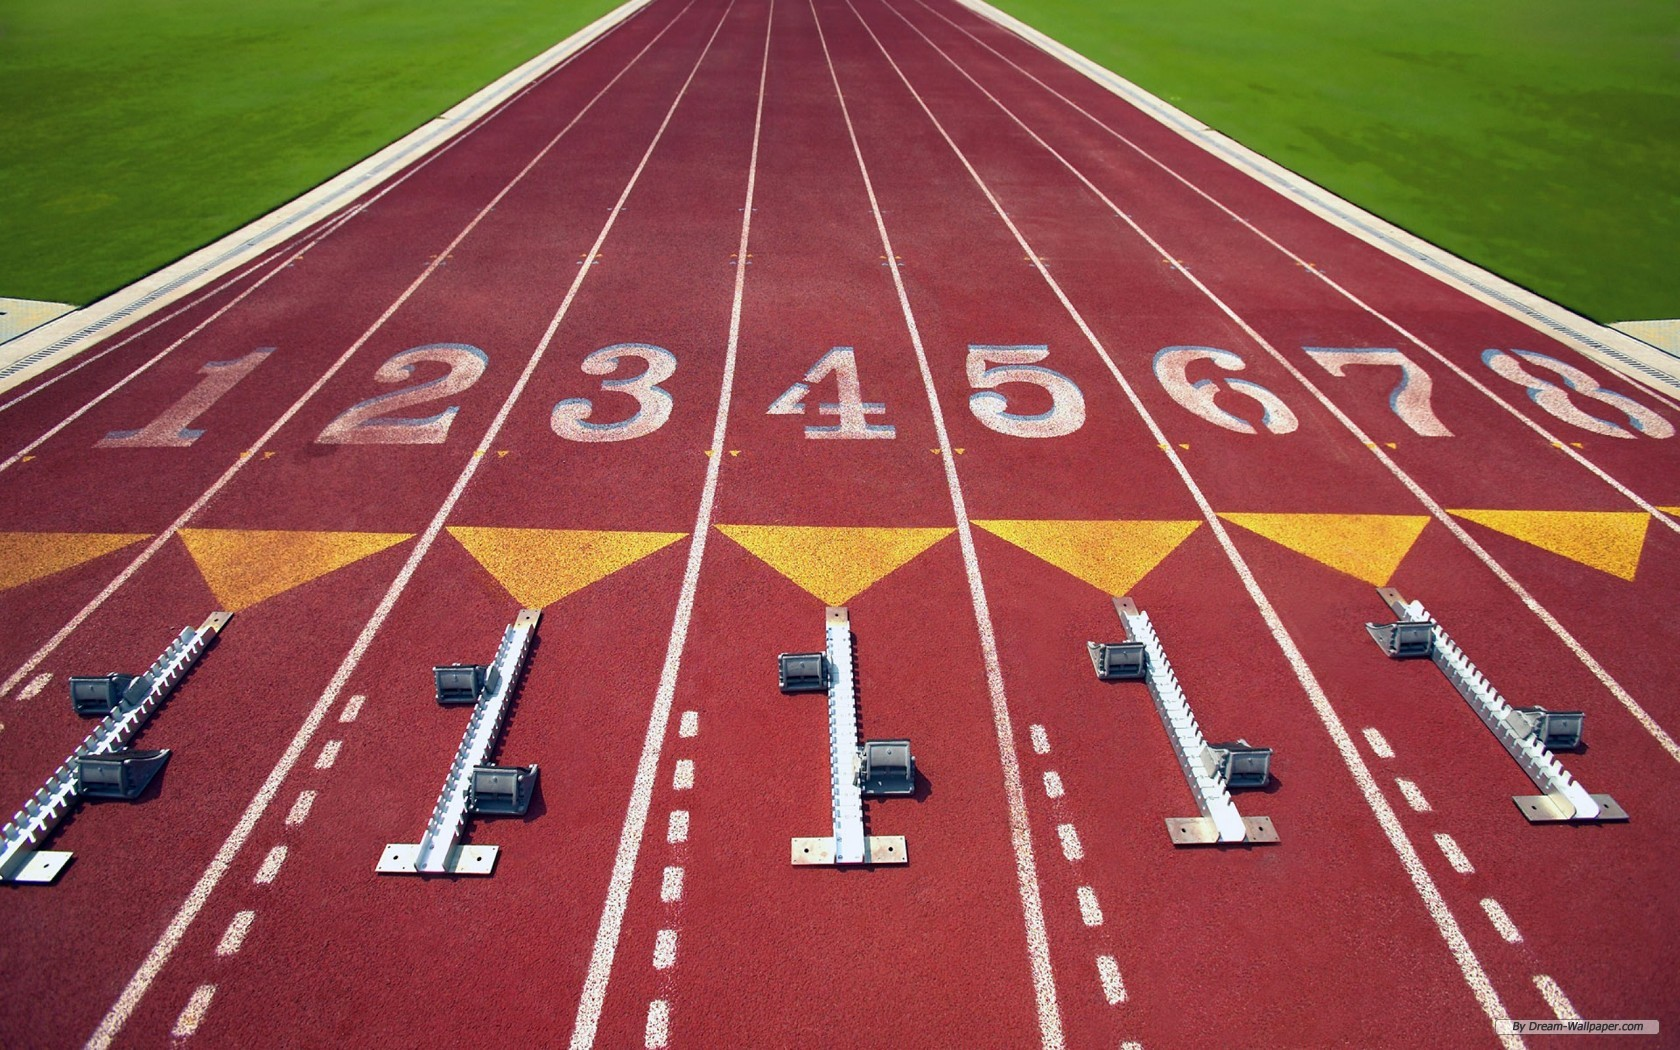 Wallpaper   Sport wallpaper   Track And Field Athletics wallpaper 1680x1050